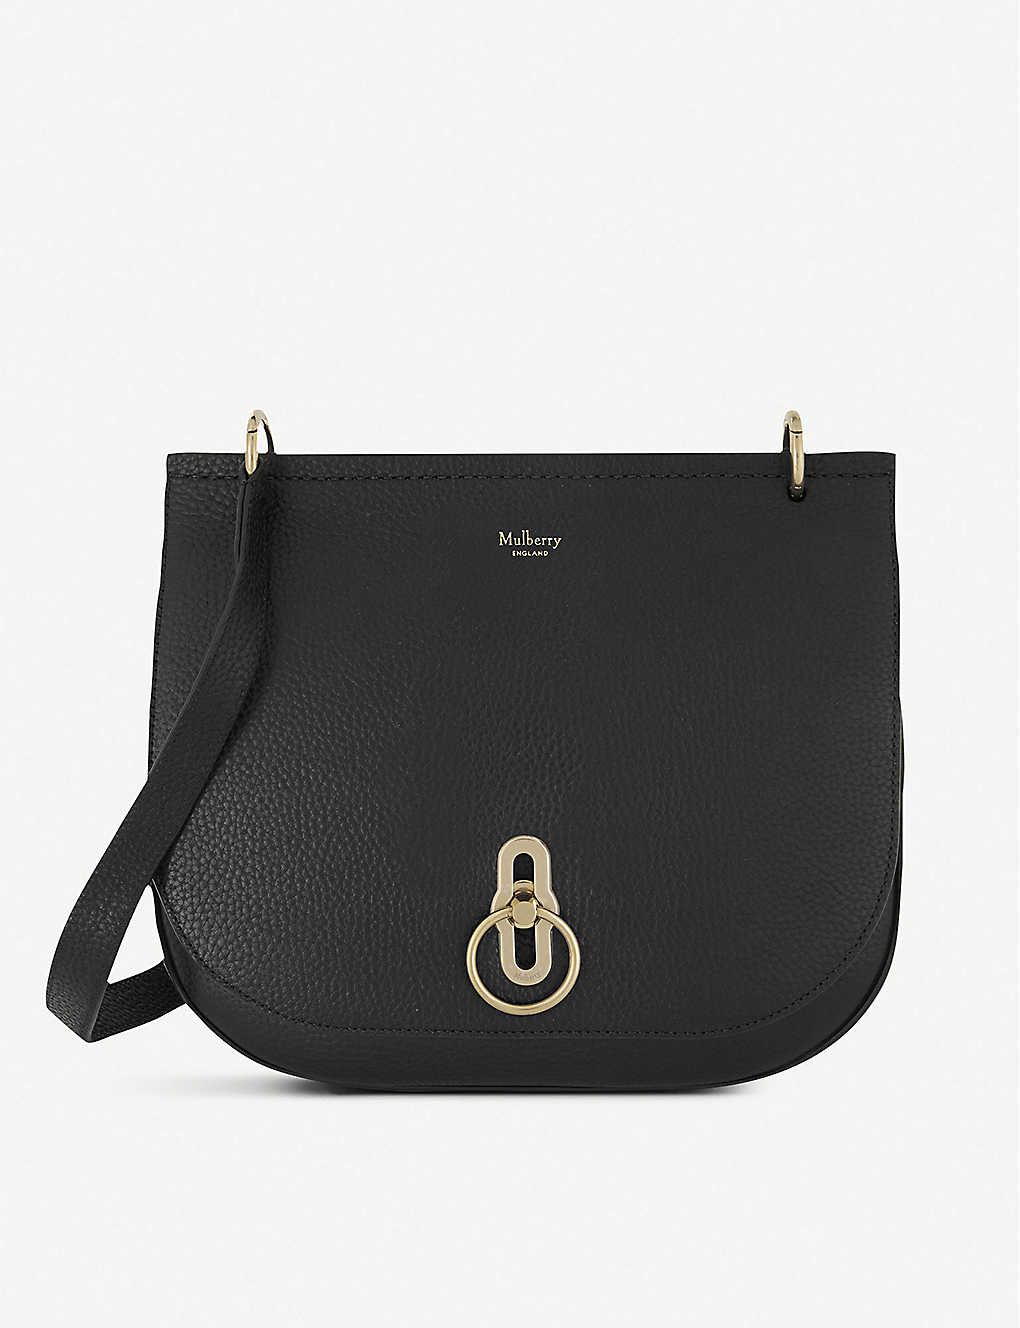 MULBERRY - Amberley grained-leather shoulder bag  bb9a774581b1d